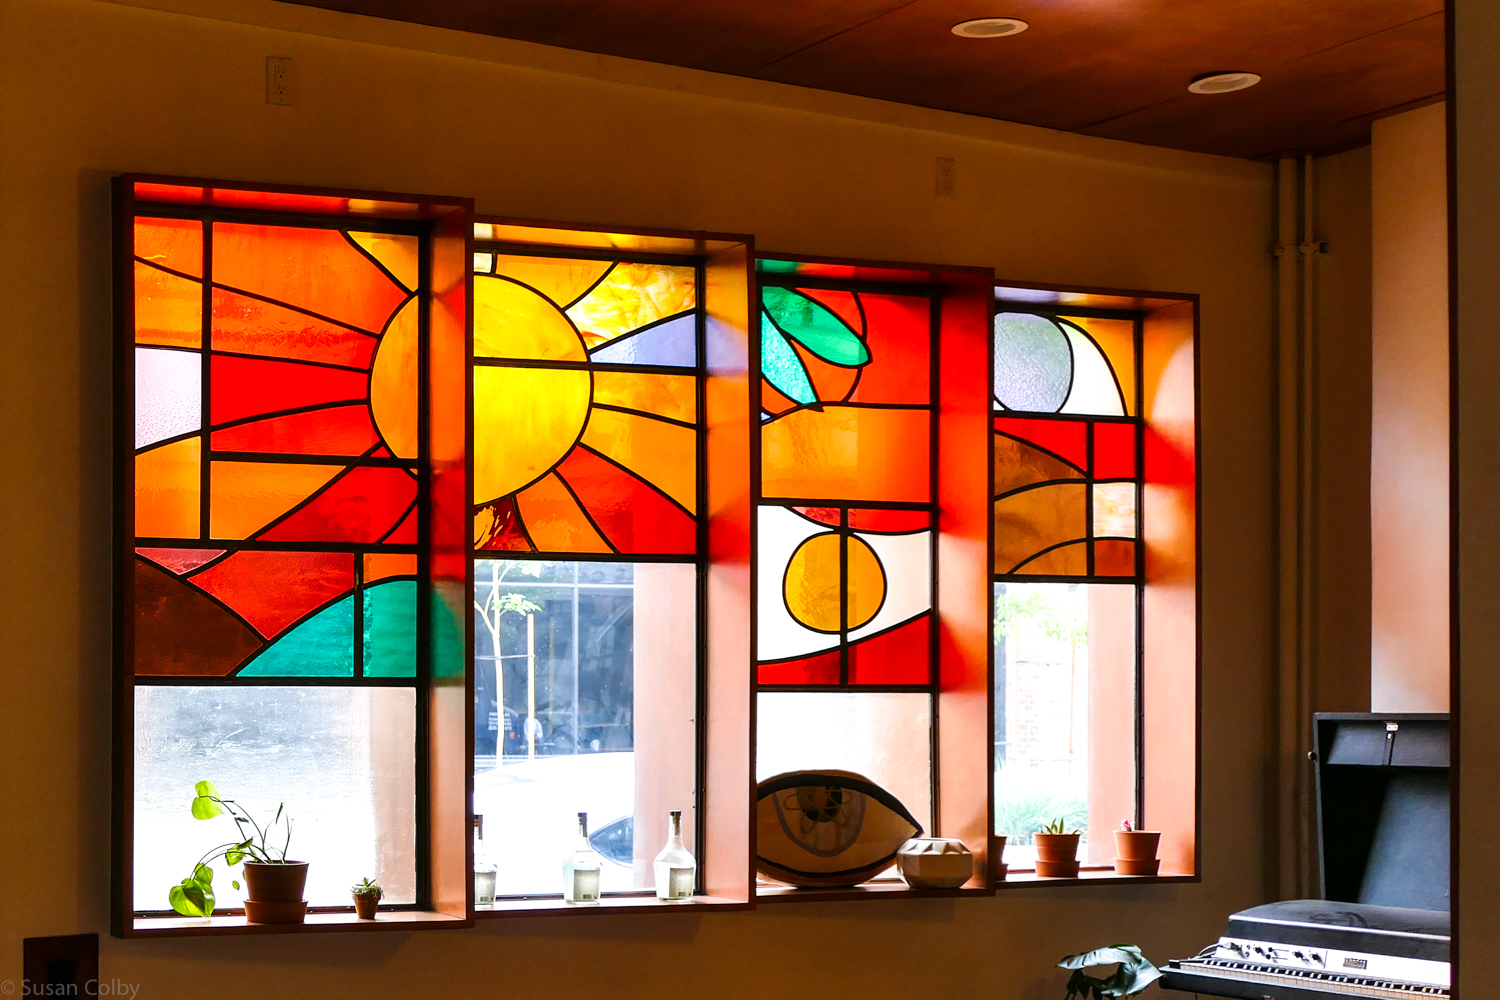 Stained glass depicting California sunshine and clementine by artist Megan Whitmarsh